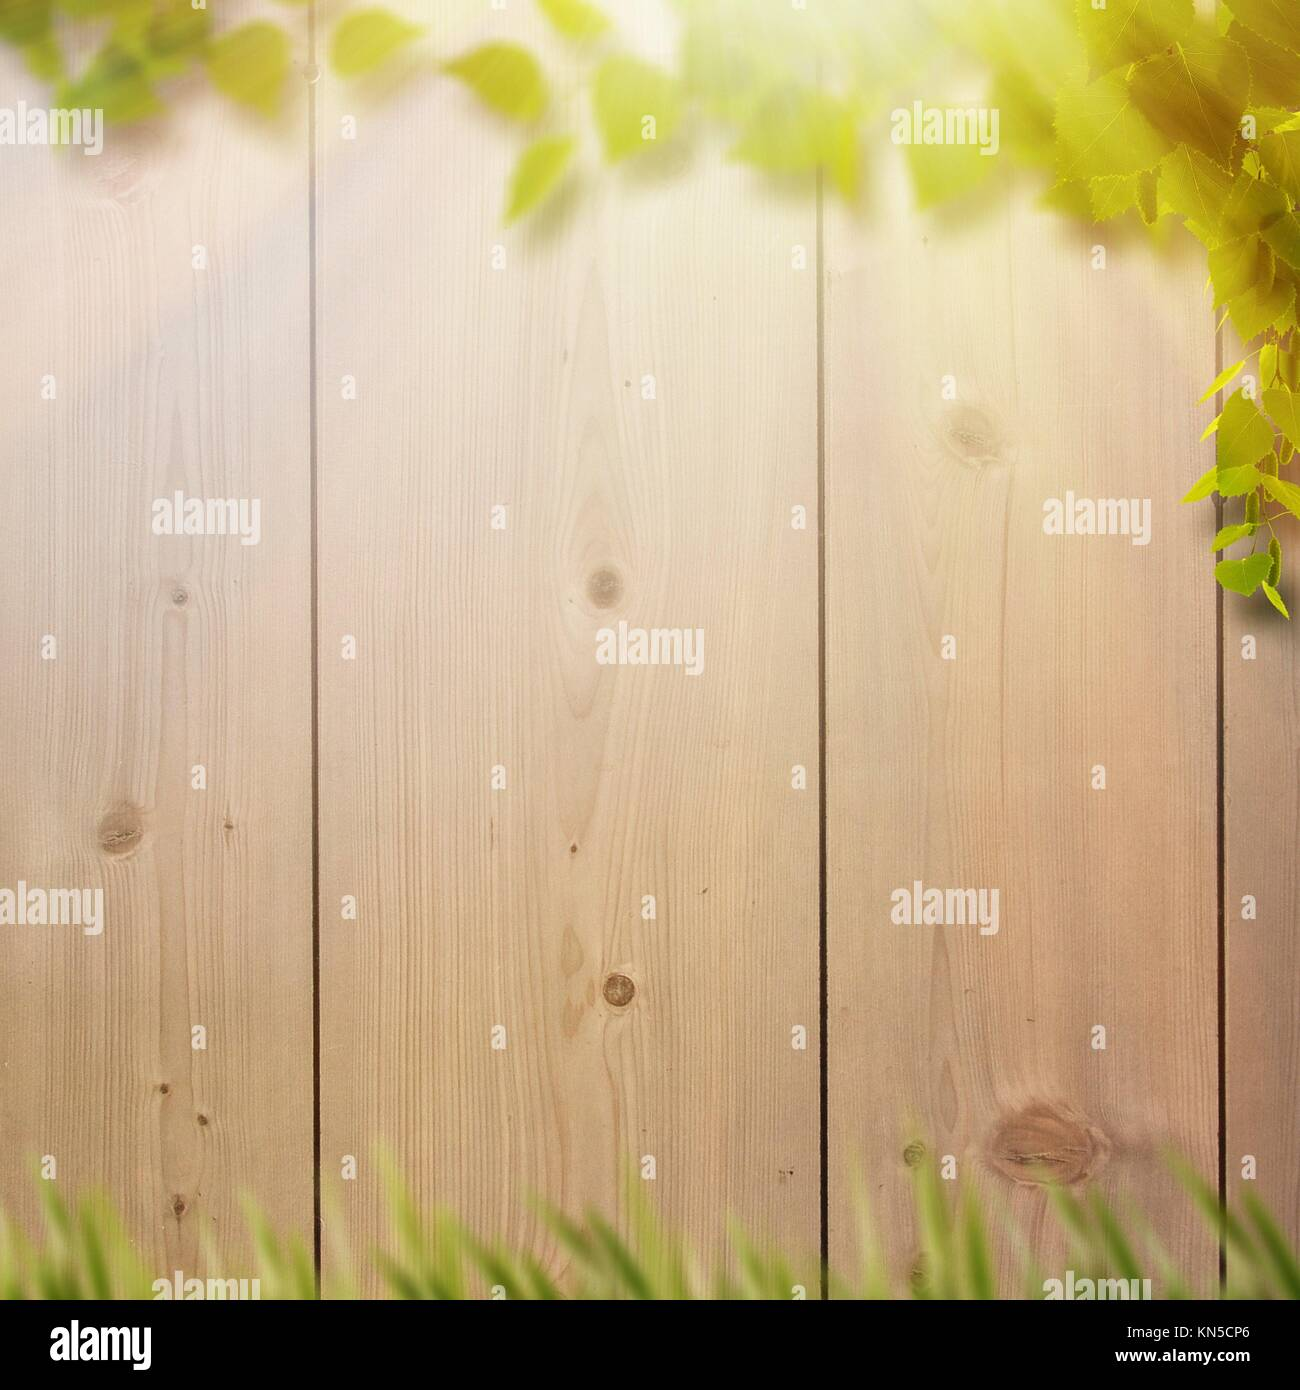 Abstract natural backgrounds with summer foliage, farm fence and bright sunlight. - Stock Image